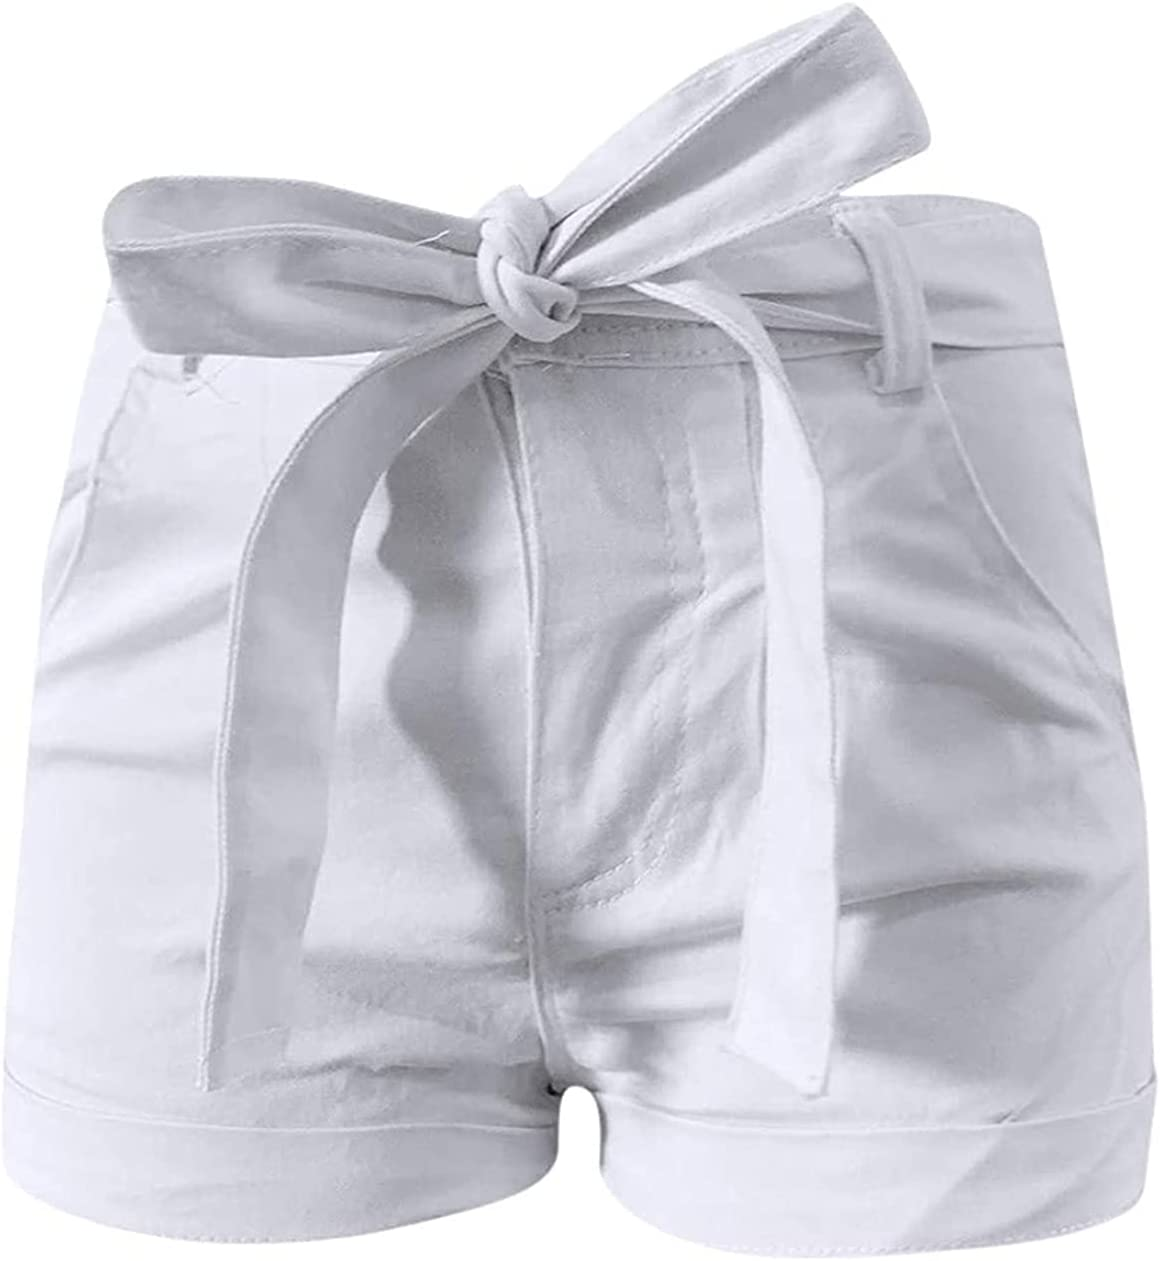 Women's Casual Short New Shipping Free Jeans with Belt Summer S Gifts Waist High Bowknot